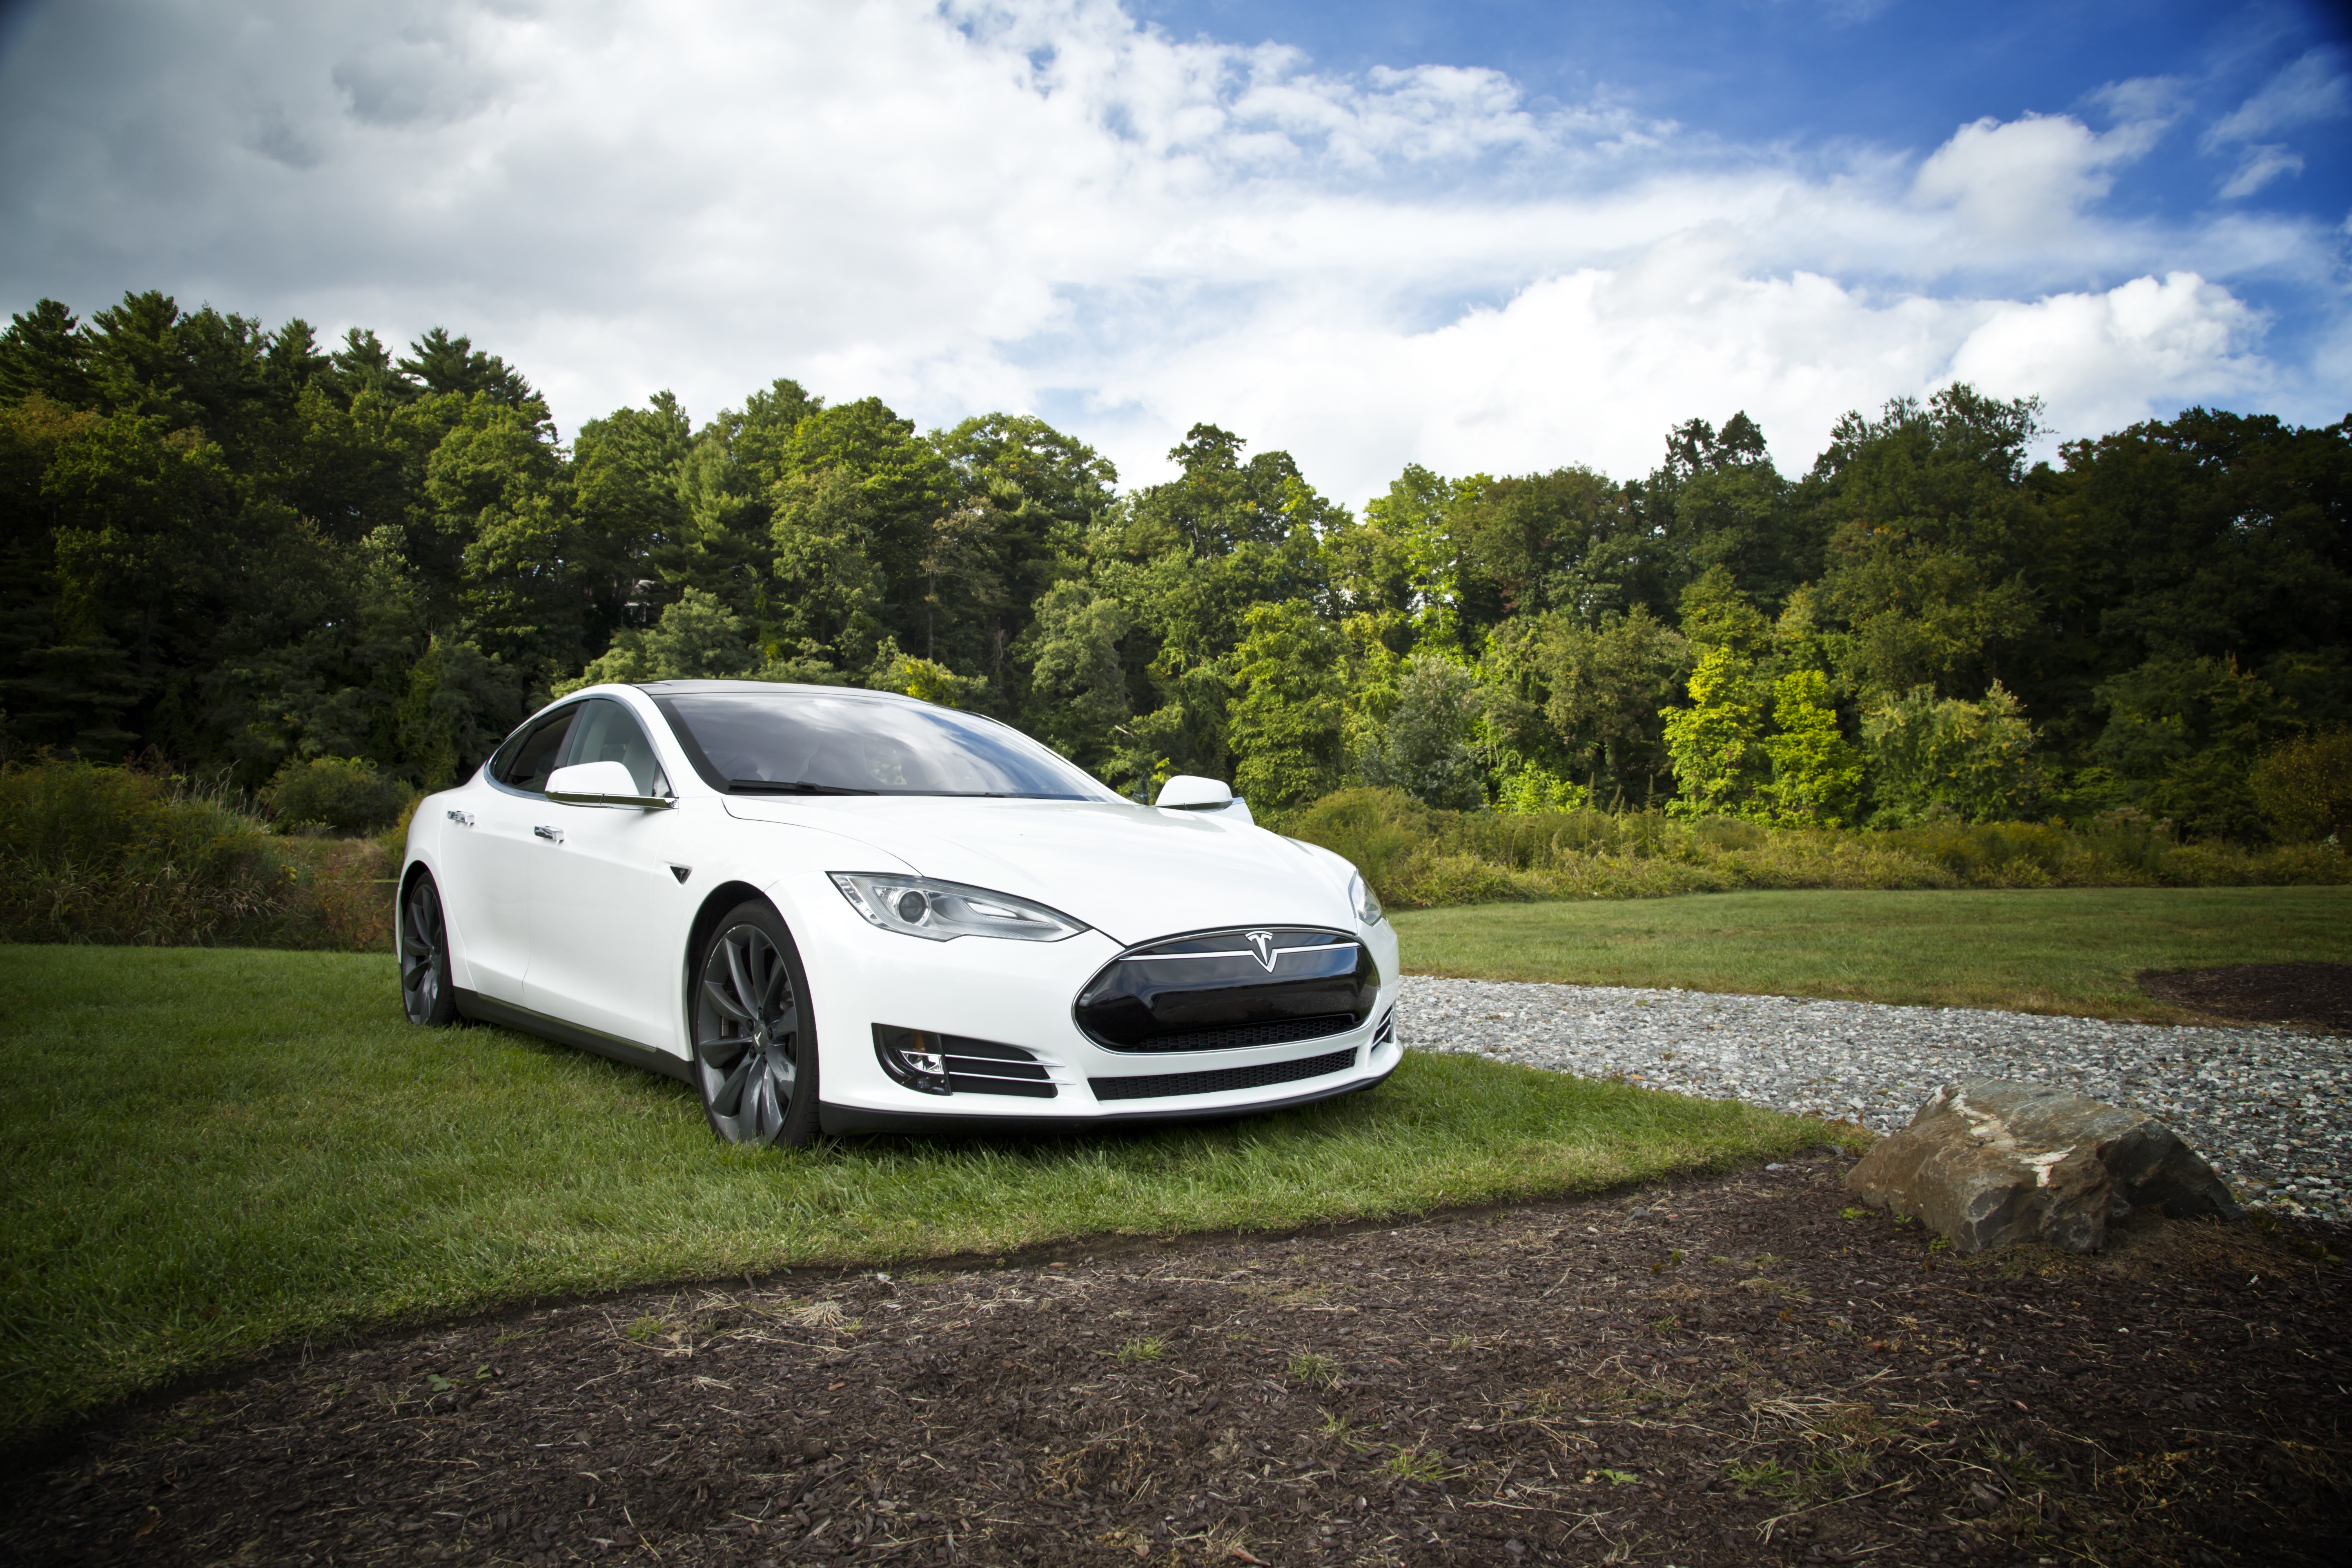 White beauty, Beauty, Car, Green, Nature, HQ Photo